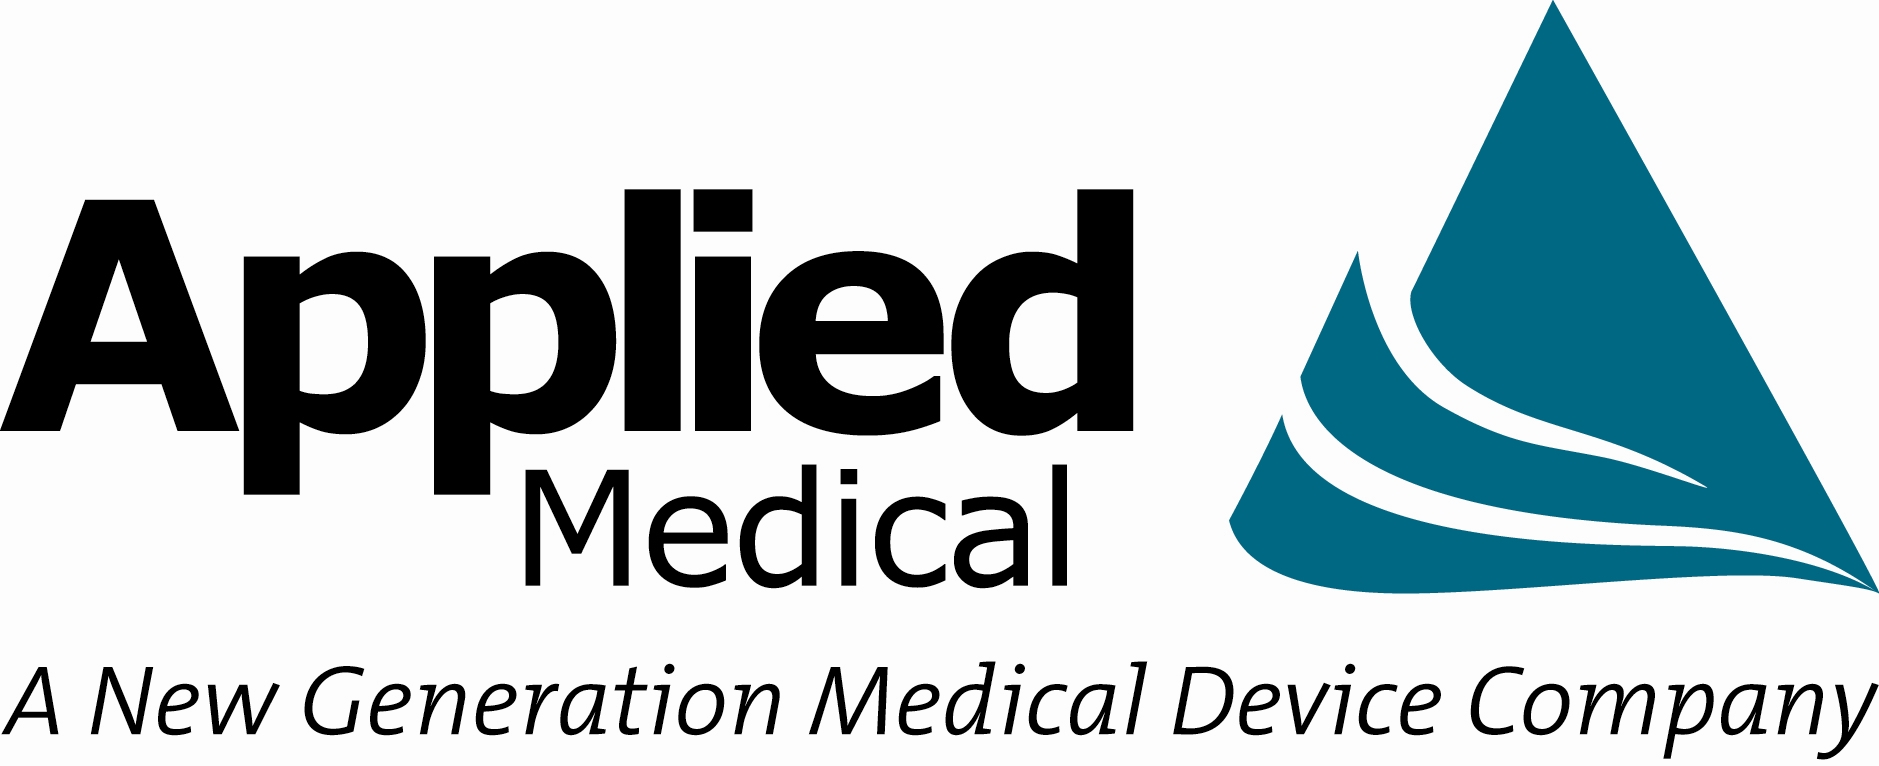 applied-medical-logo-5-2011.jpg